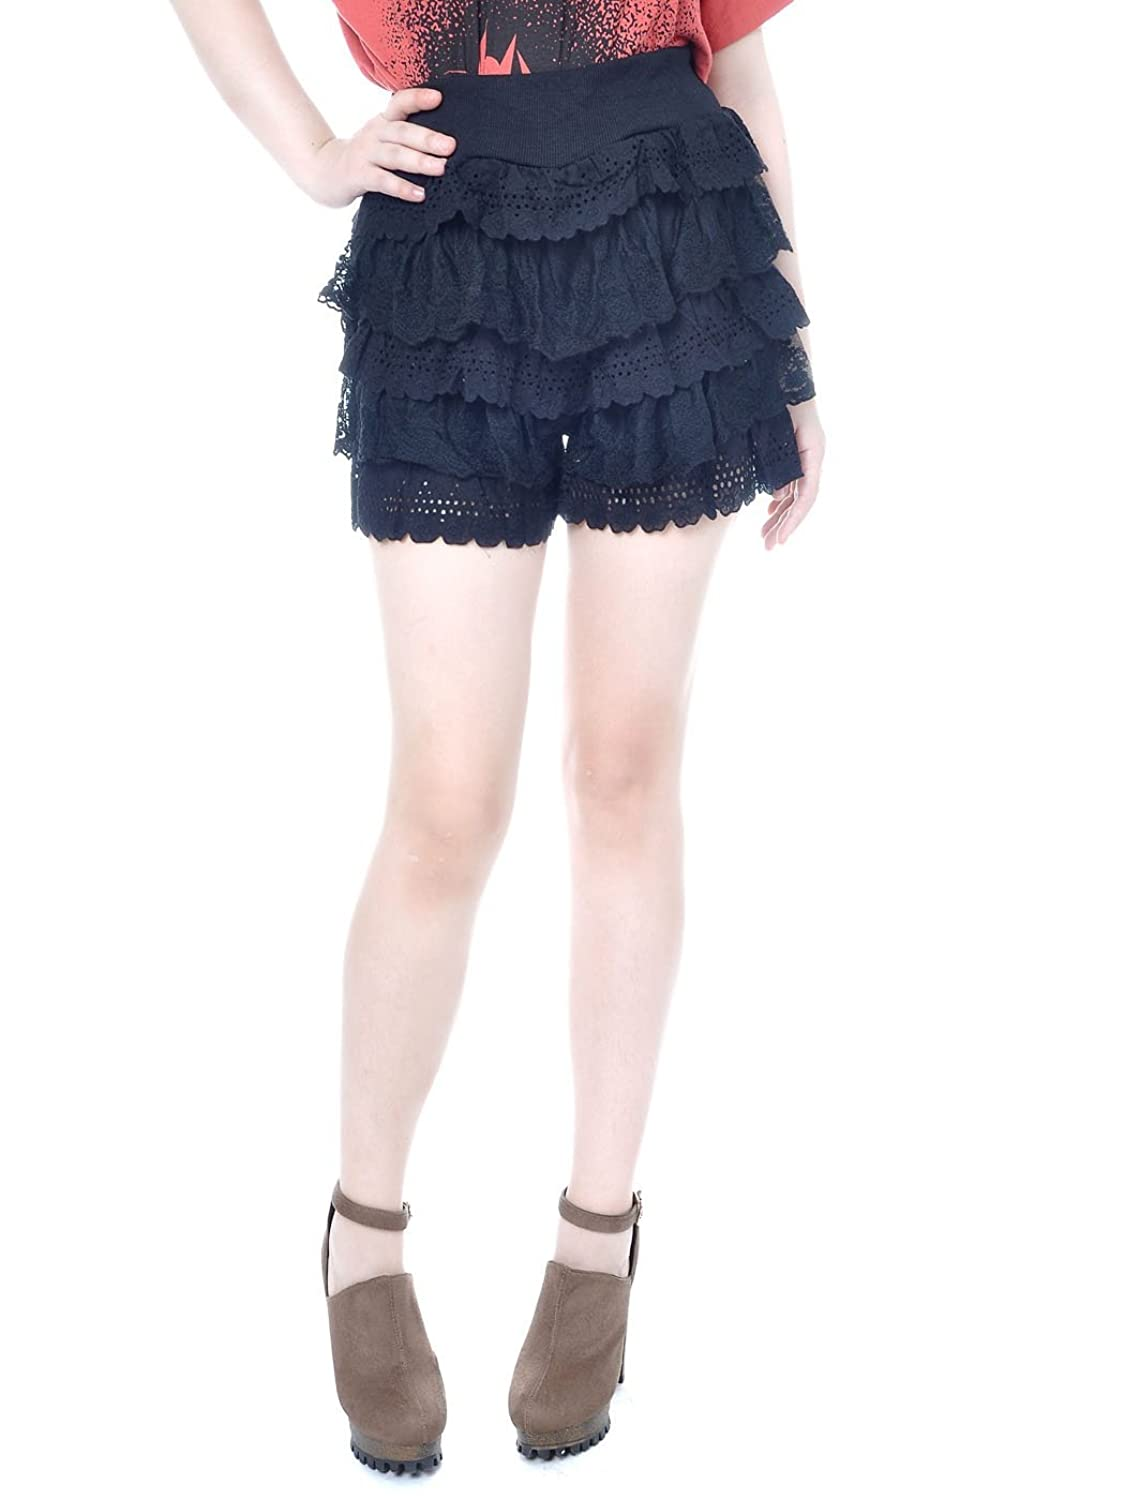 Anna-Kaci S/M Fit Knit Multi Tiered Scalloped Lace Cotton High Waisted Shorts